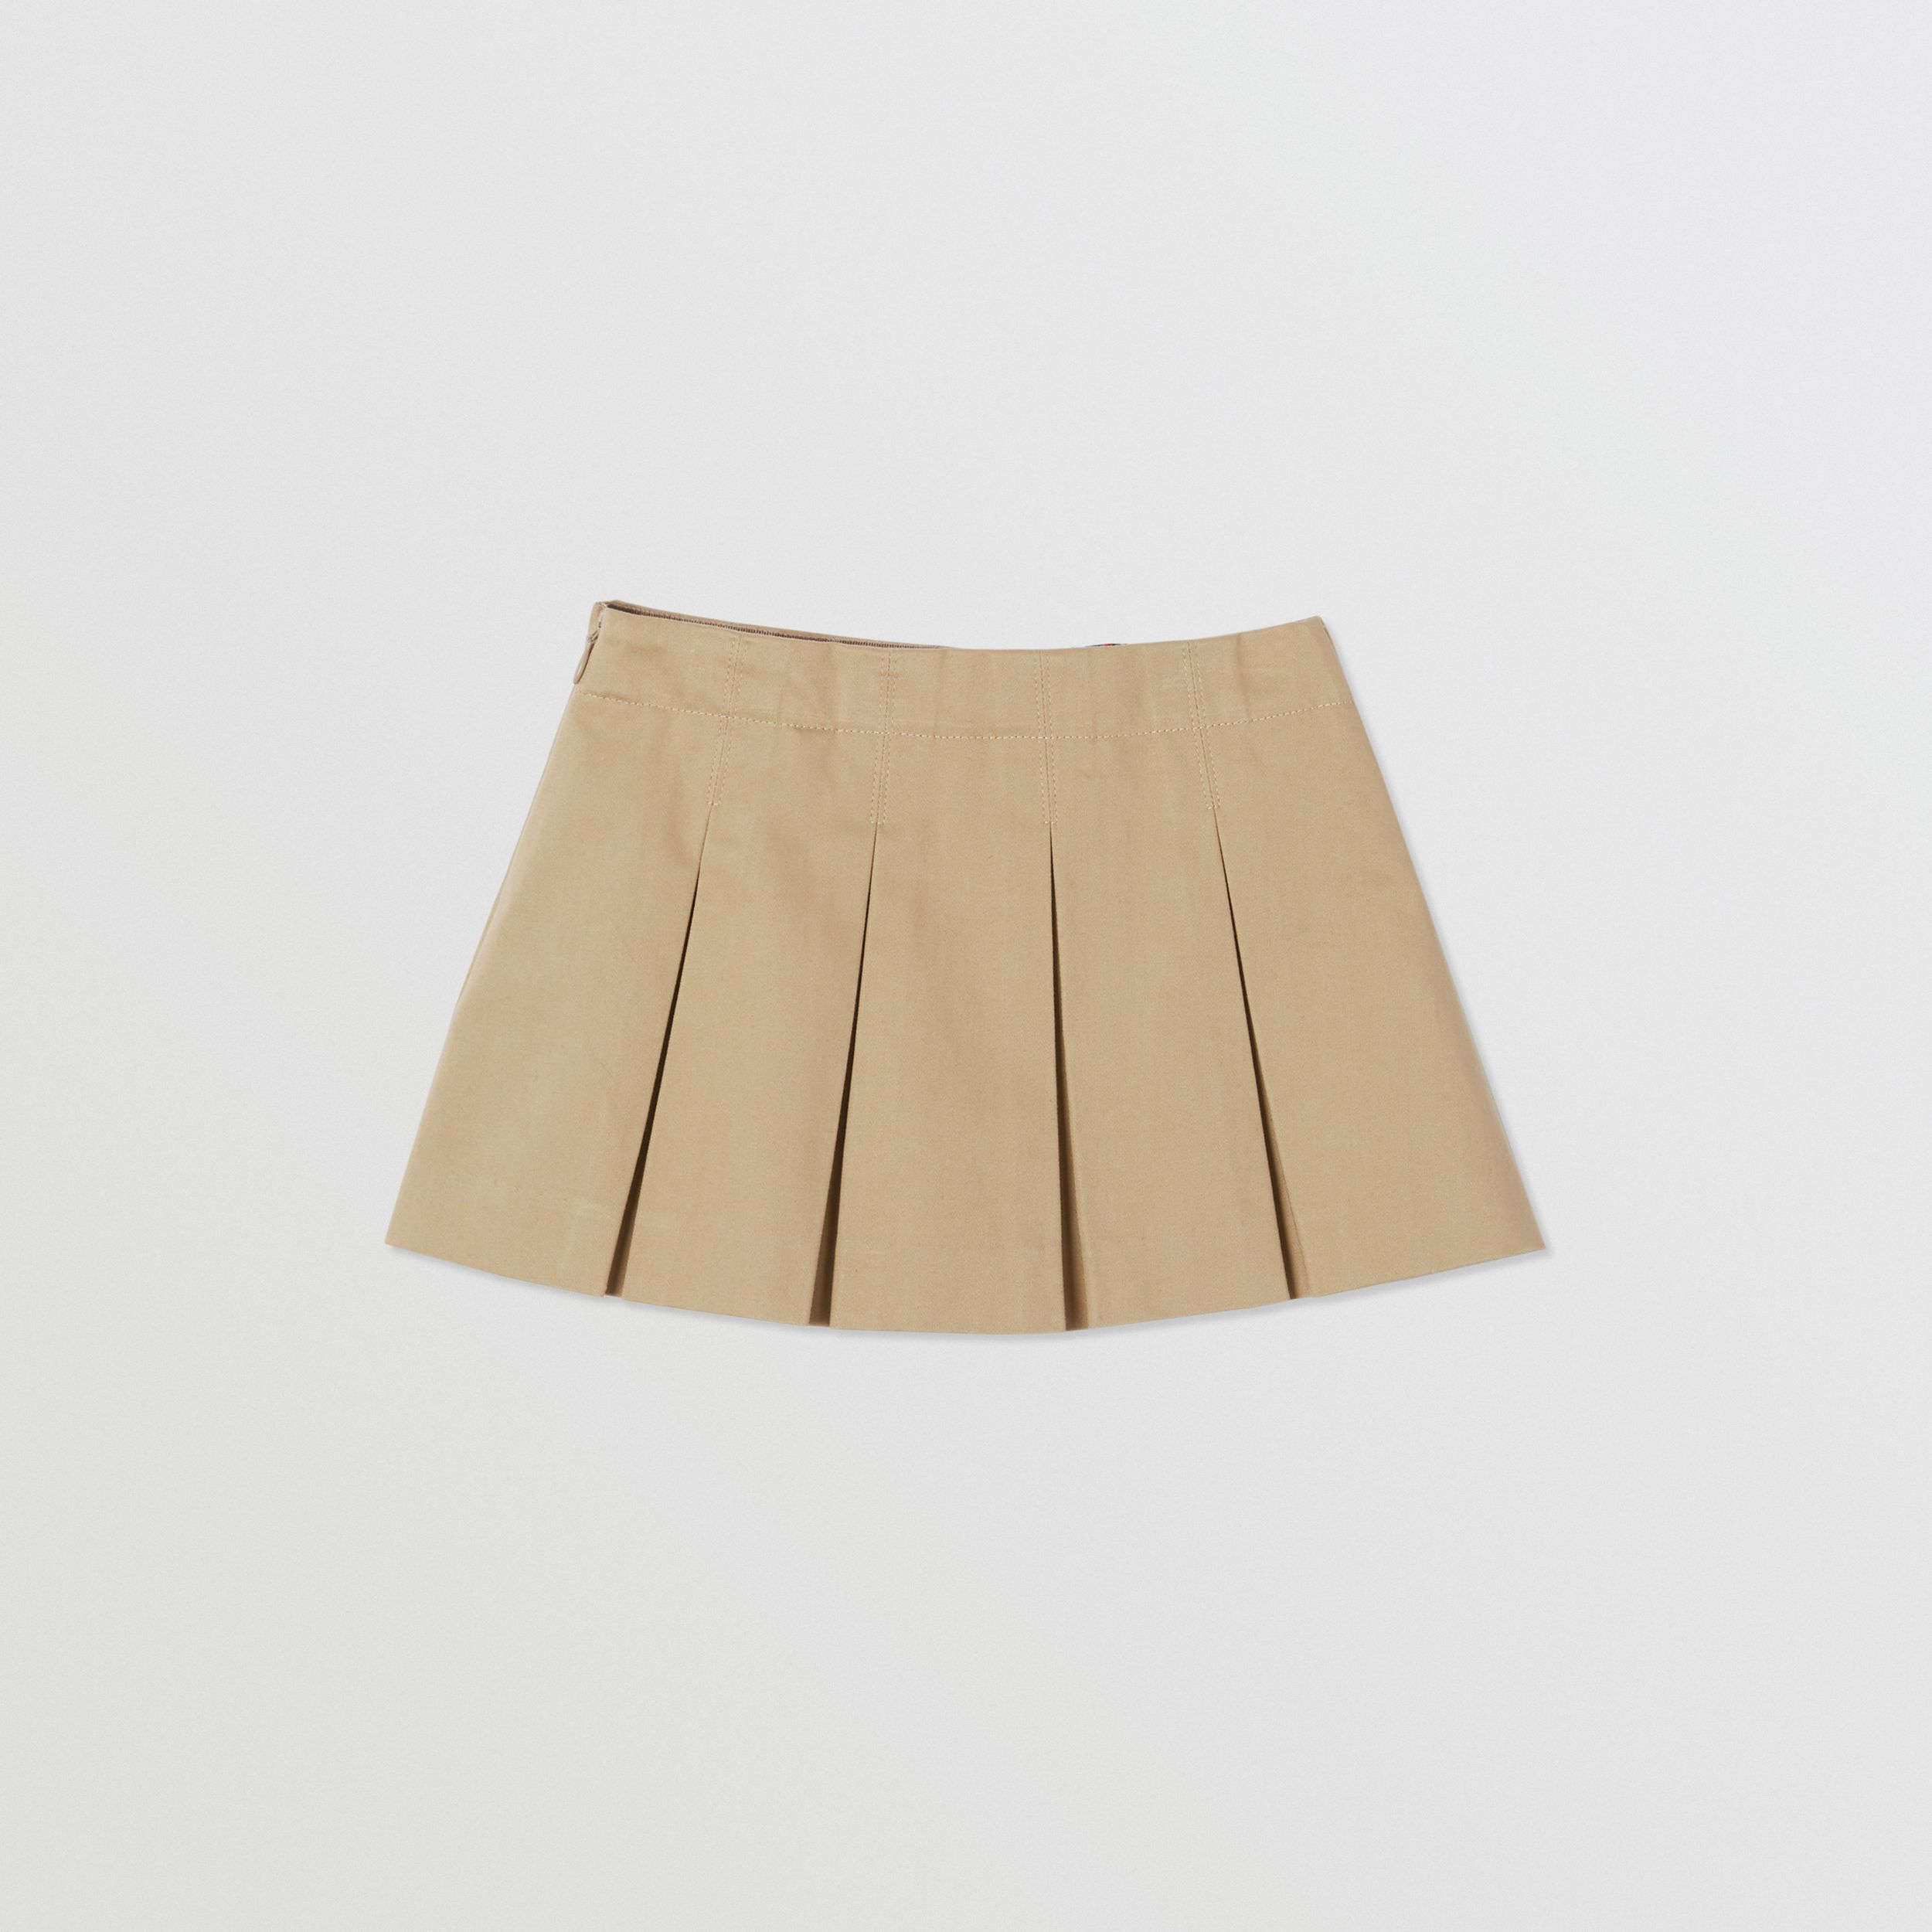 Monogram Stripe Print Box-pleated Cotton Skirt in Honey - Children | Burberry Hong Kong S.A.R. - 4